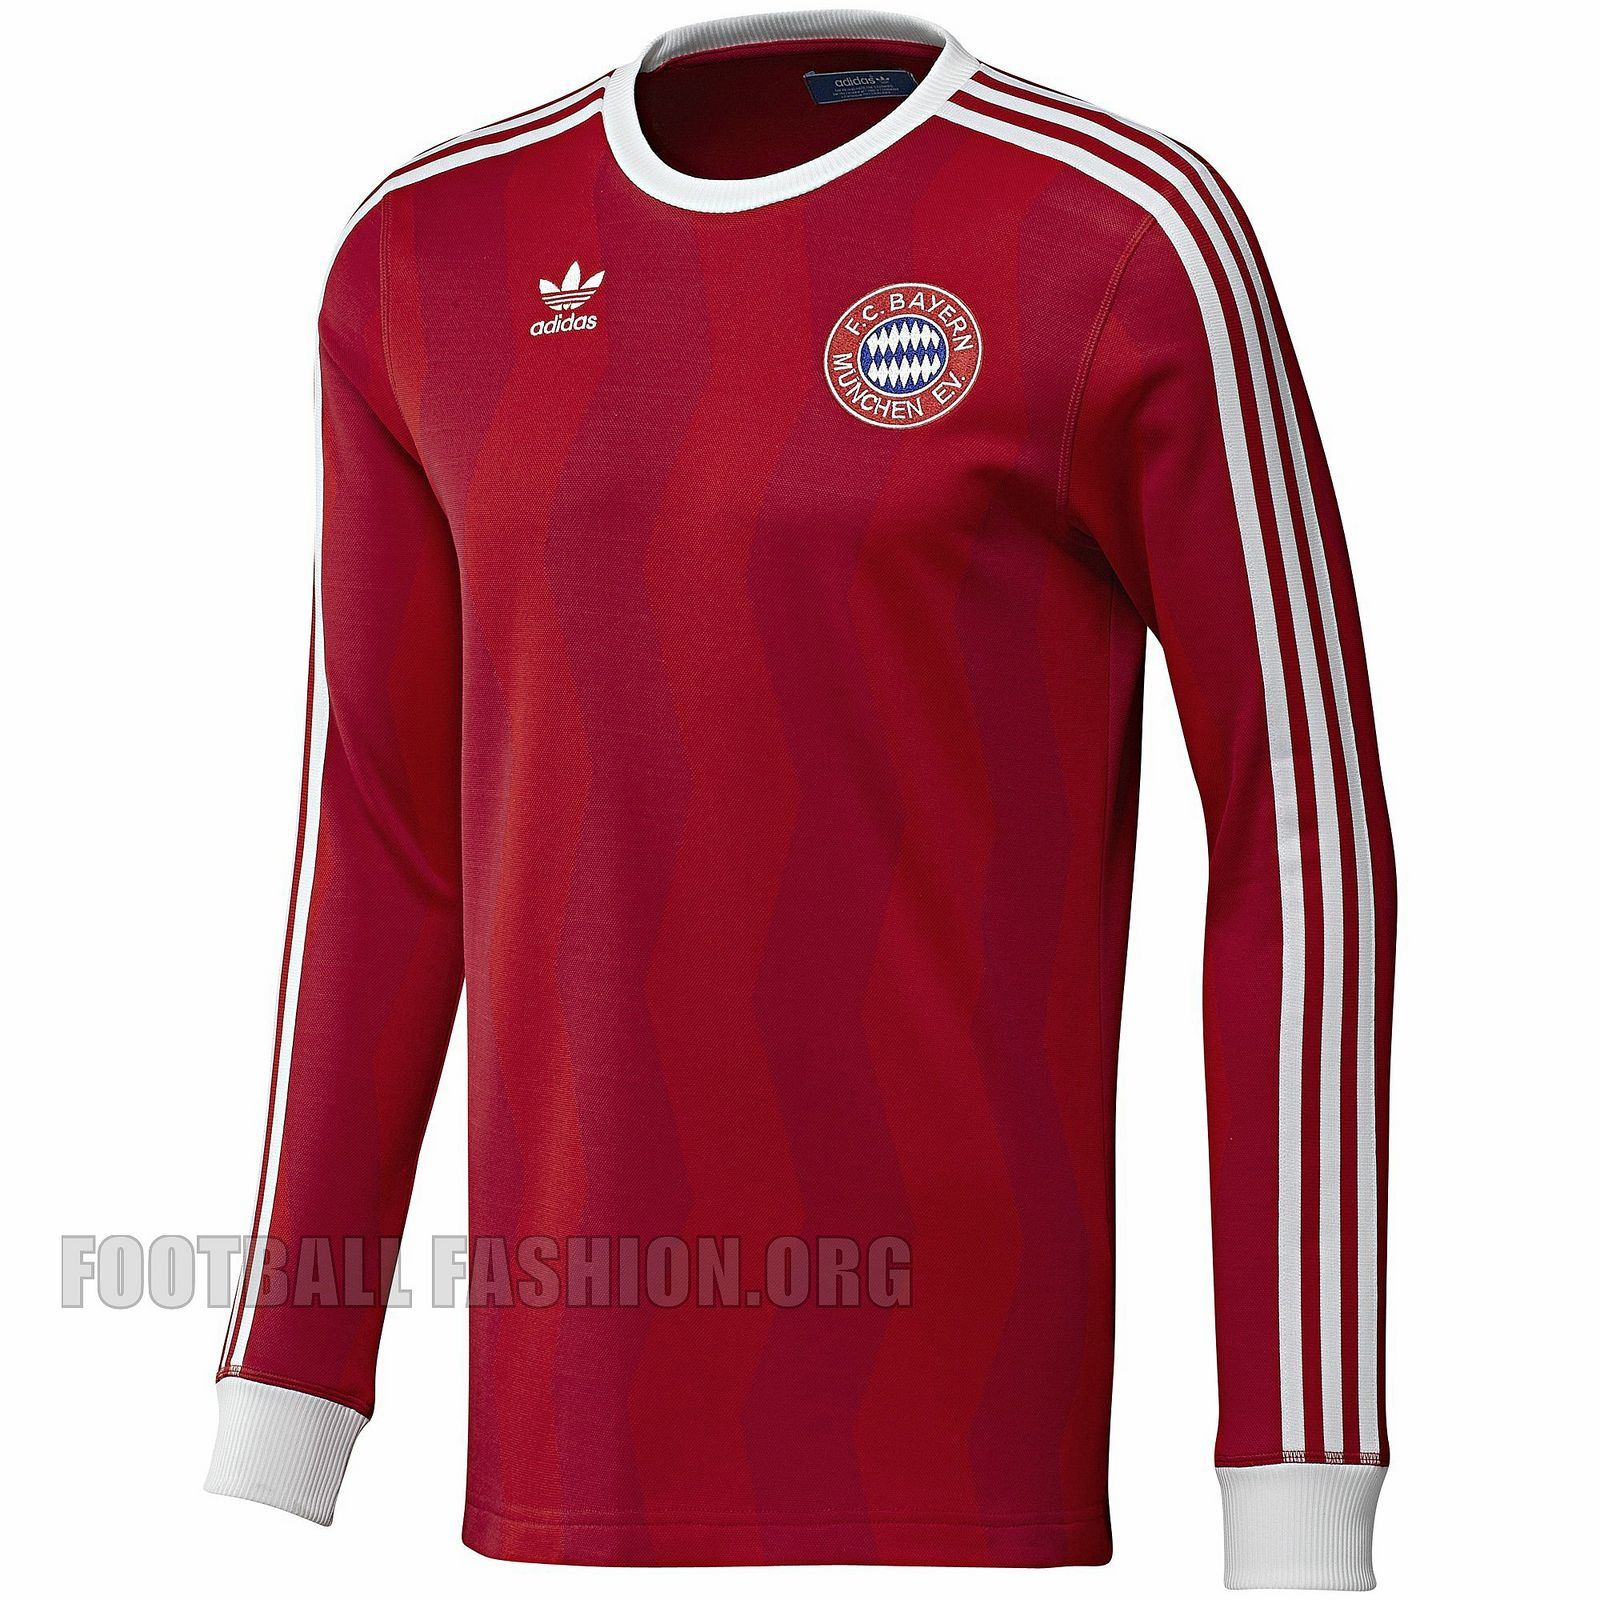 Adidas FC Bayern München 2018 Retro Jersey Leaked Footy